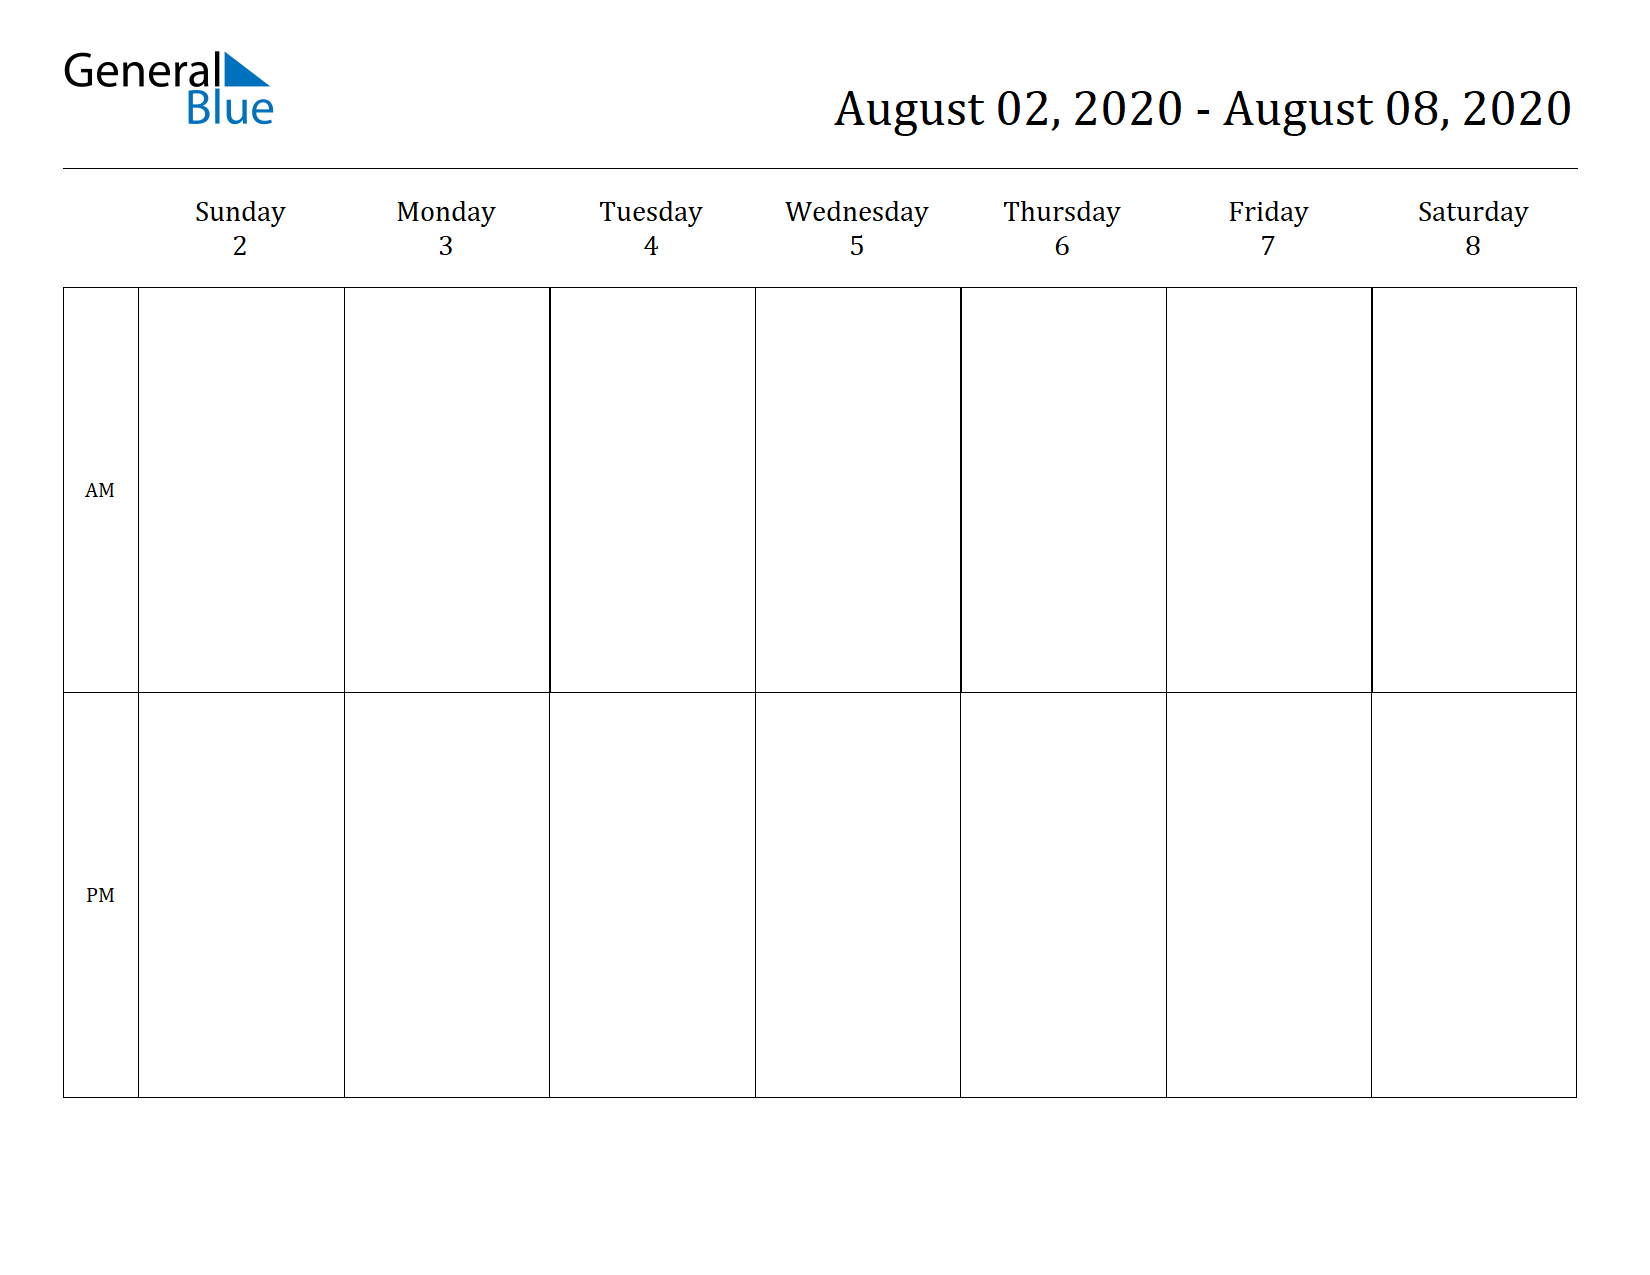 Weekly Calendar for Aug 02, 2020 to Aug 08, 2020